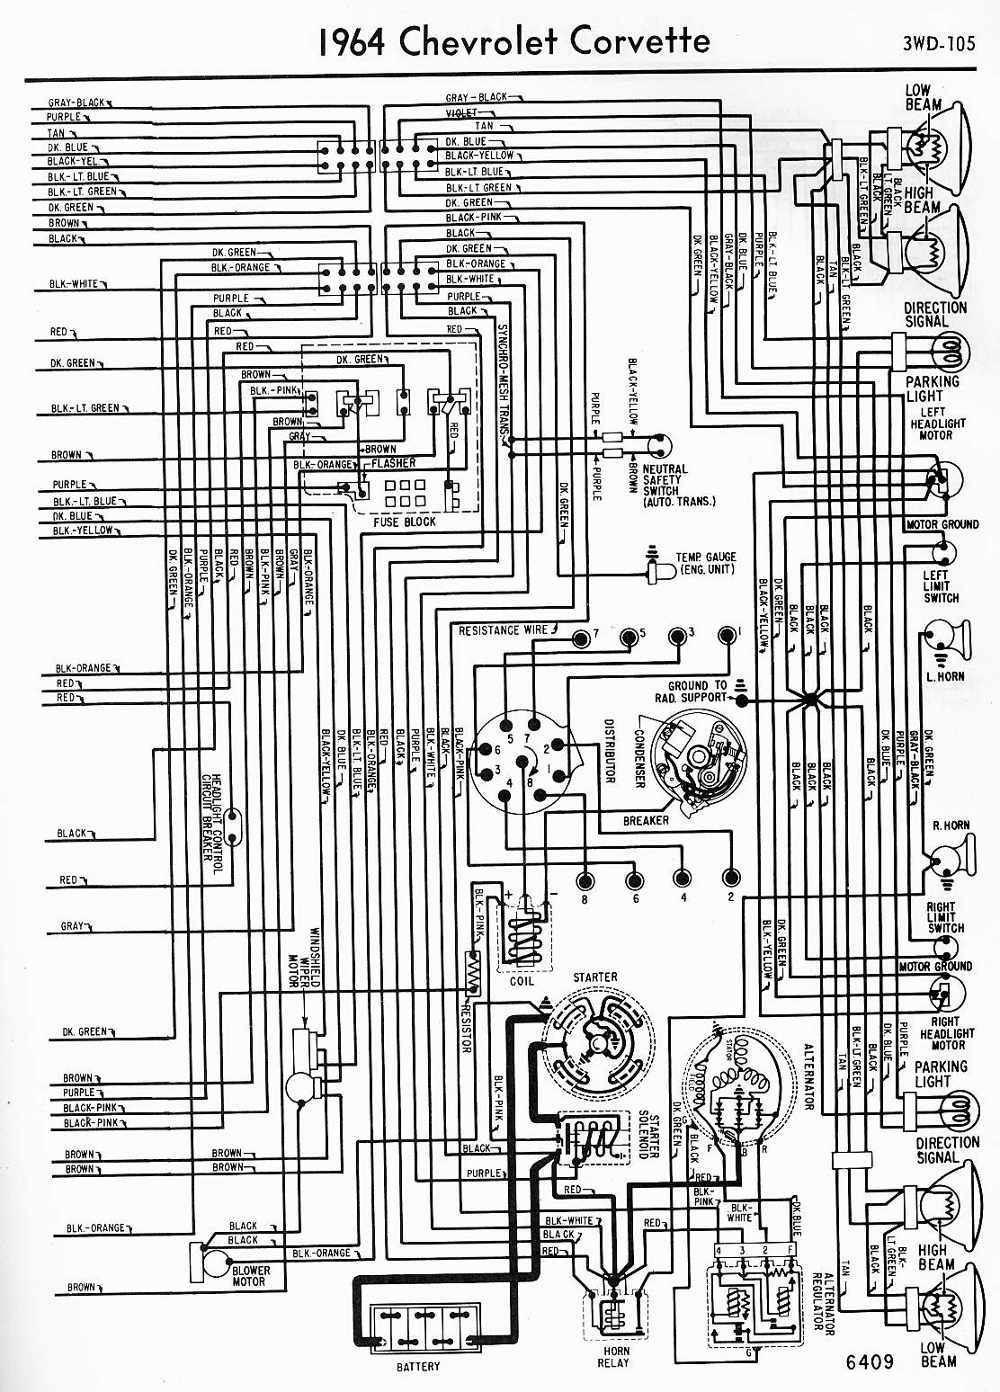 64 Impala Drawing At Free For Personal Use 1965 Chevy Biscayne Wiring Diagram 1000x1392 1964